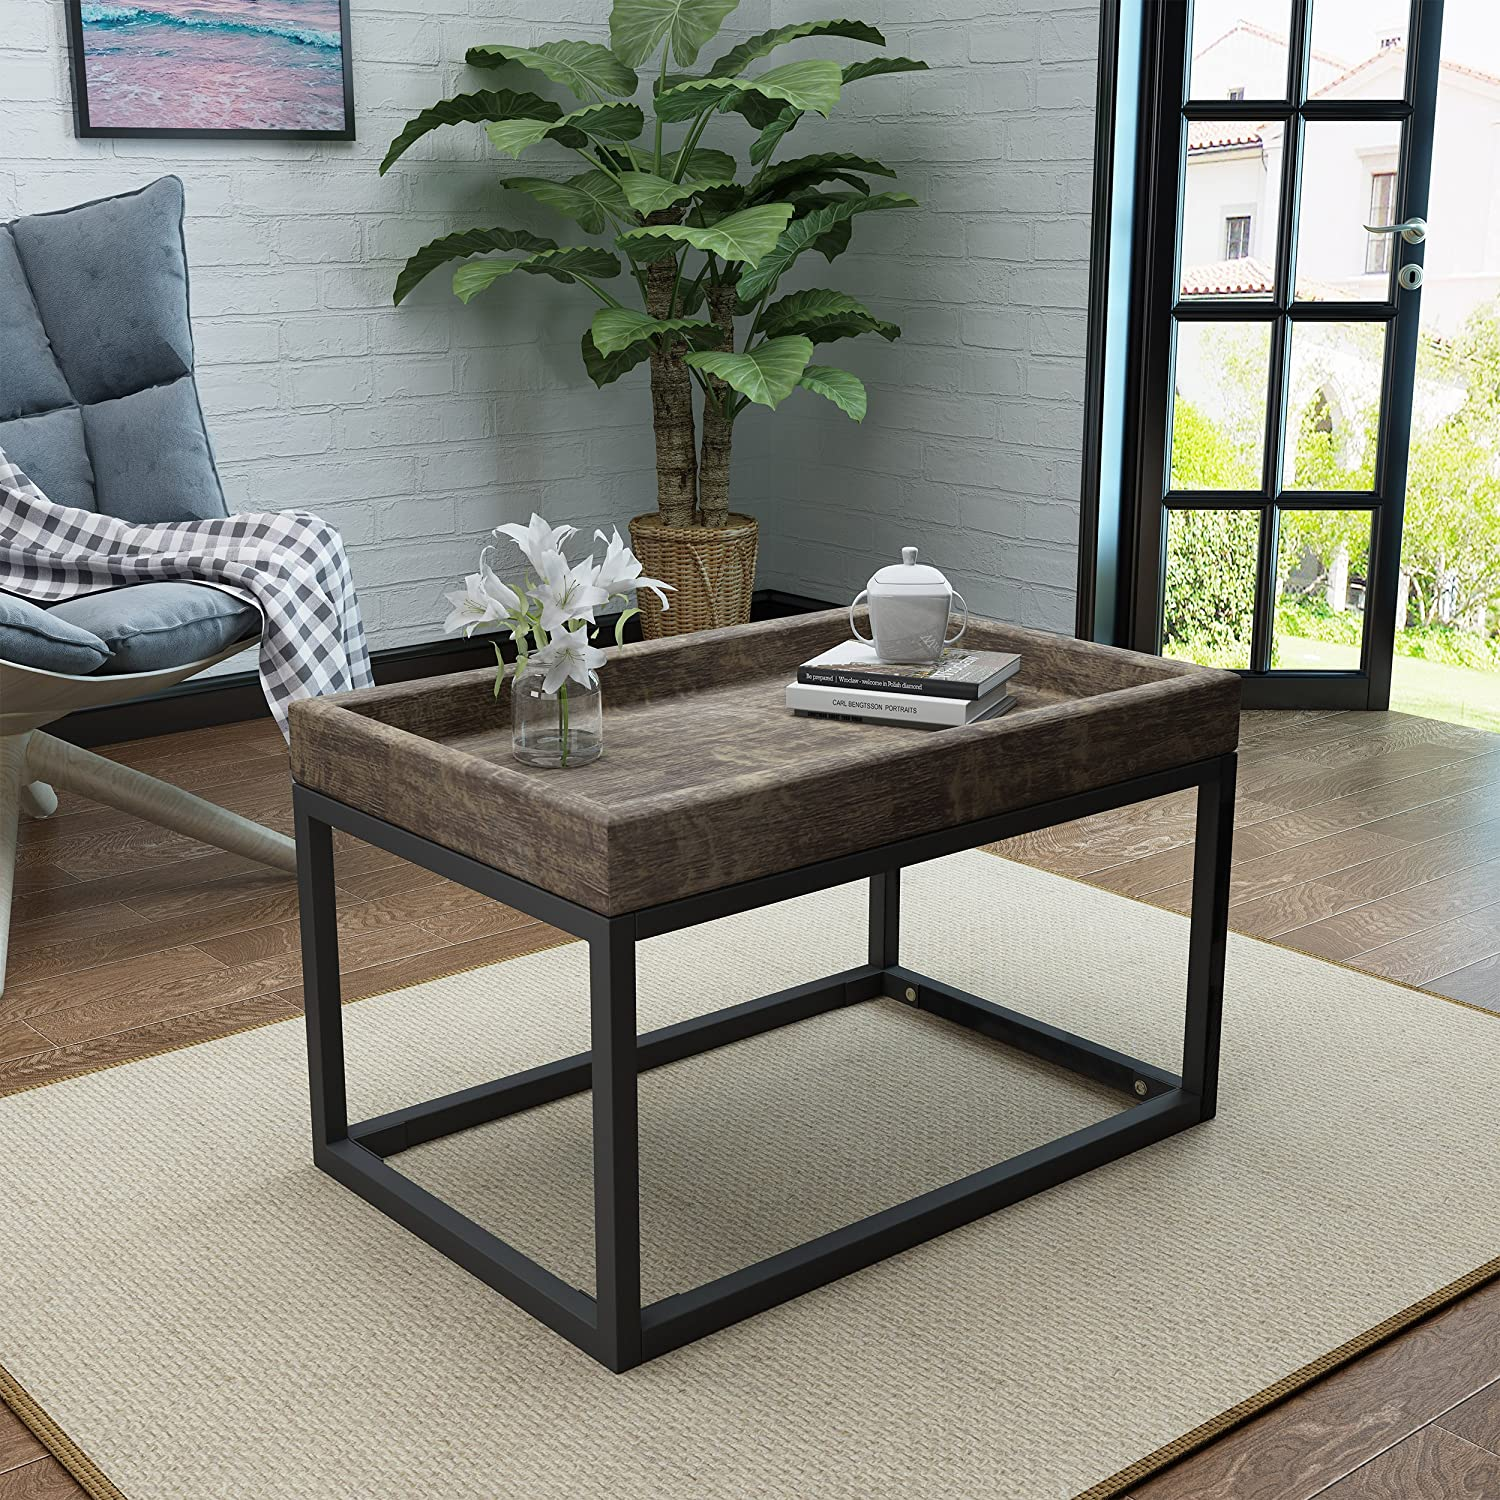 Amazon Com Halo Rustic Finished Faux Wood Coffee Table With Black